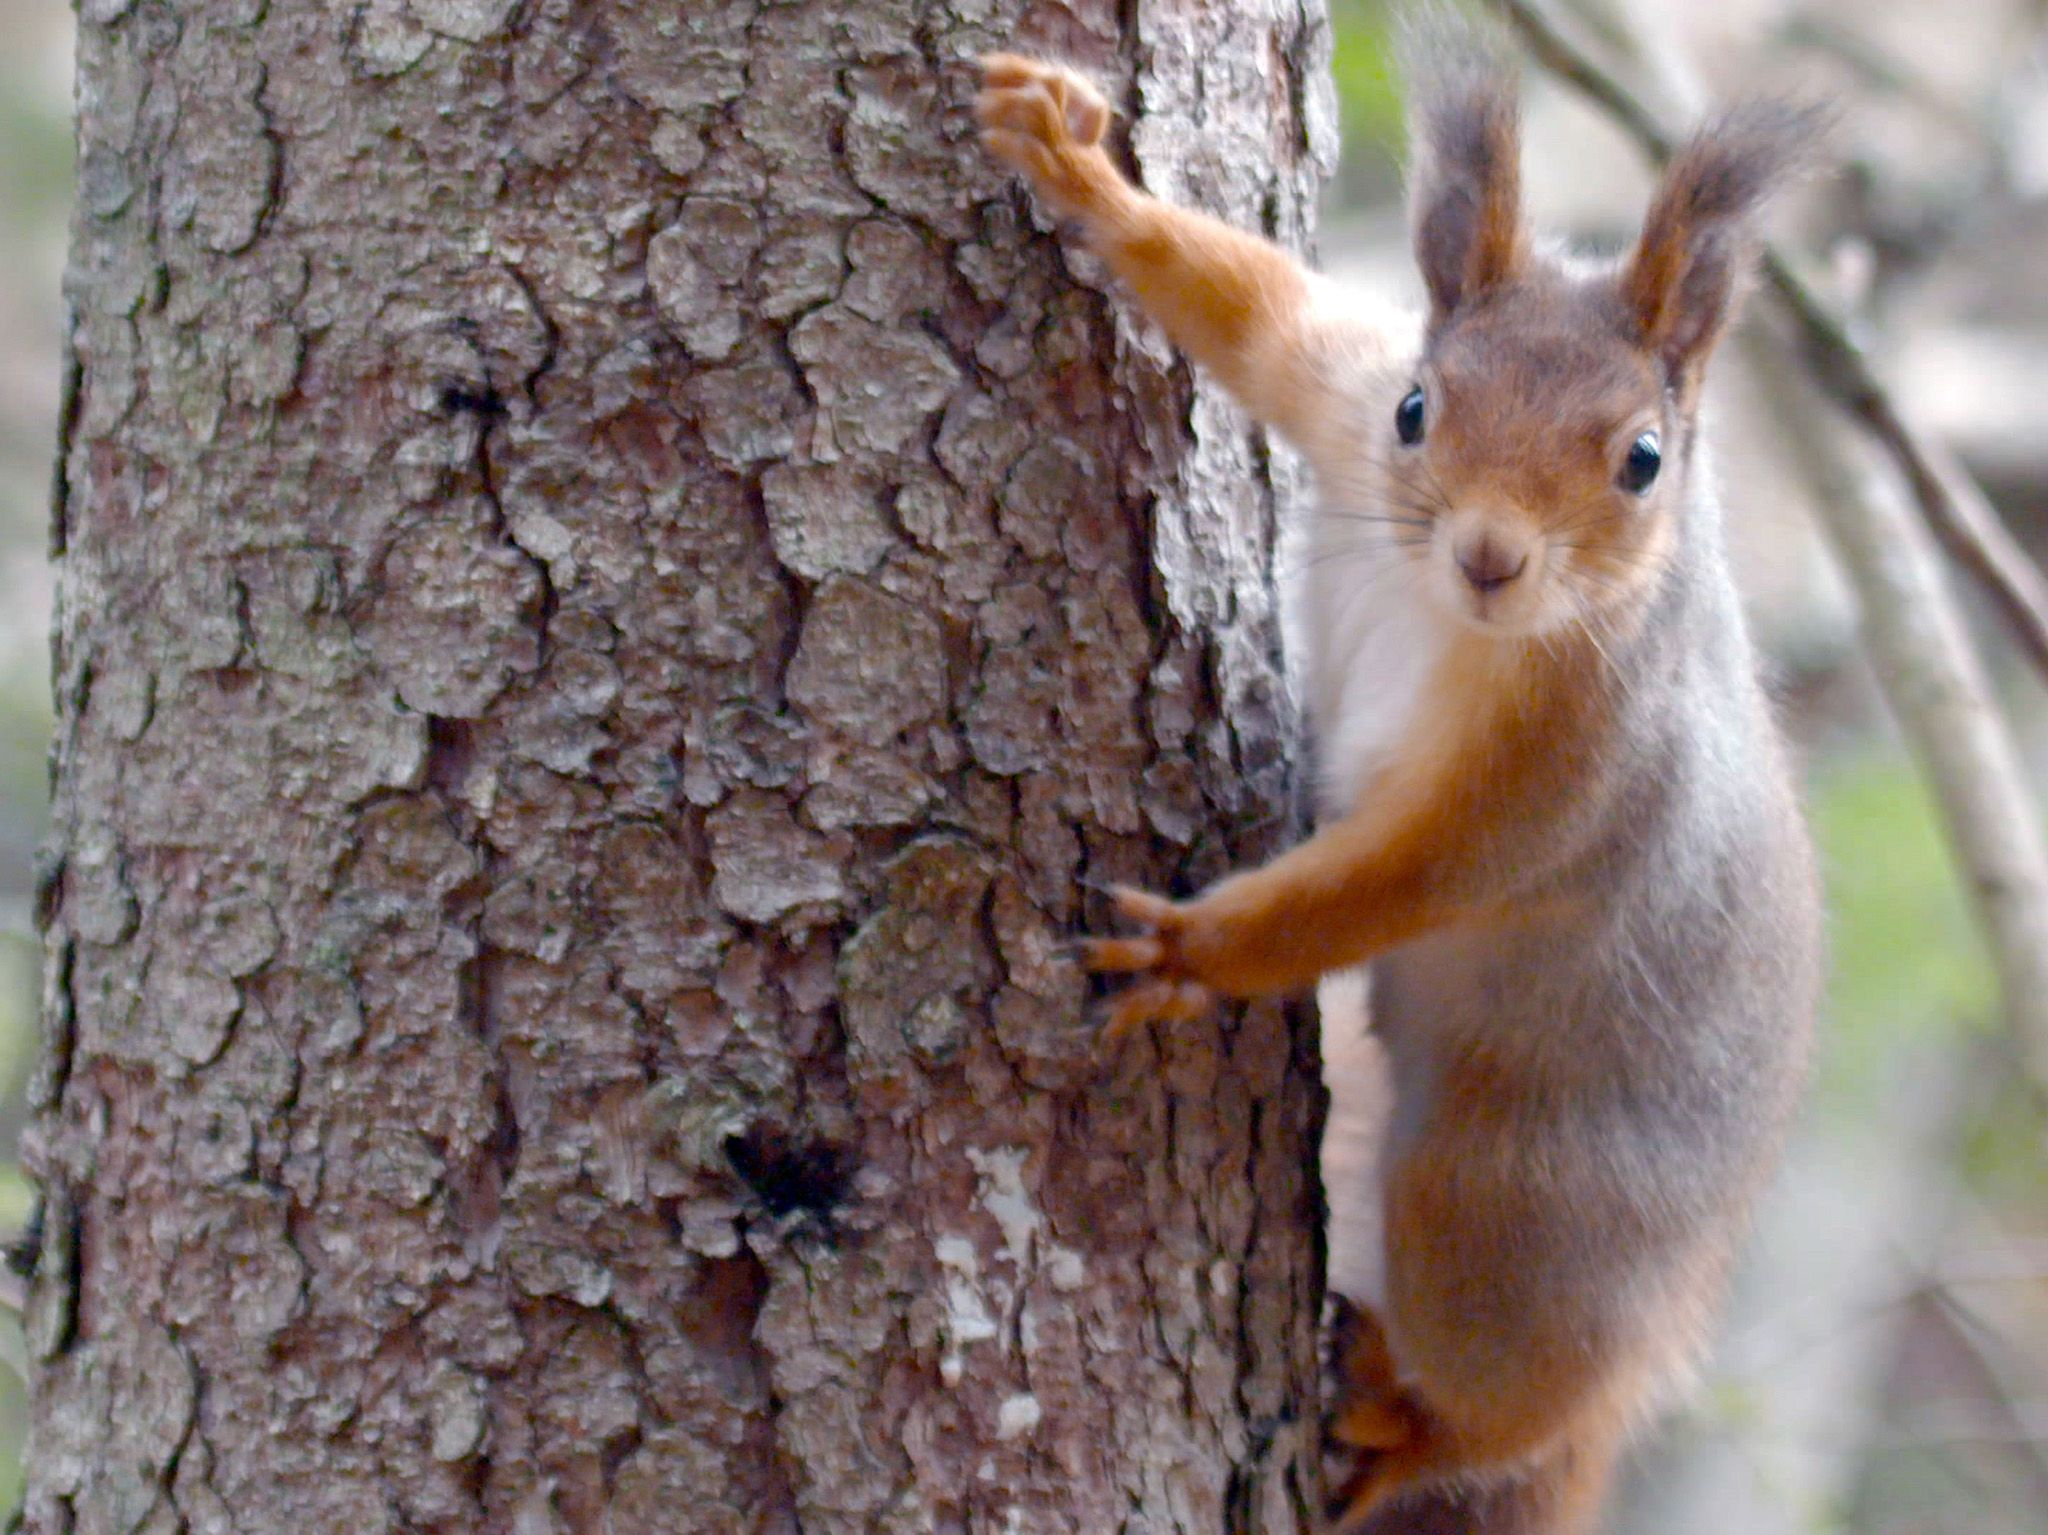 Squirrel climbing a tree. This image is from Wild Scandinavia. [Photo of the day - August 2019]